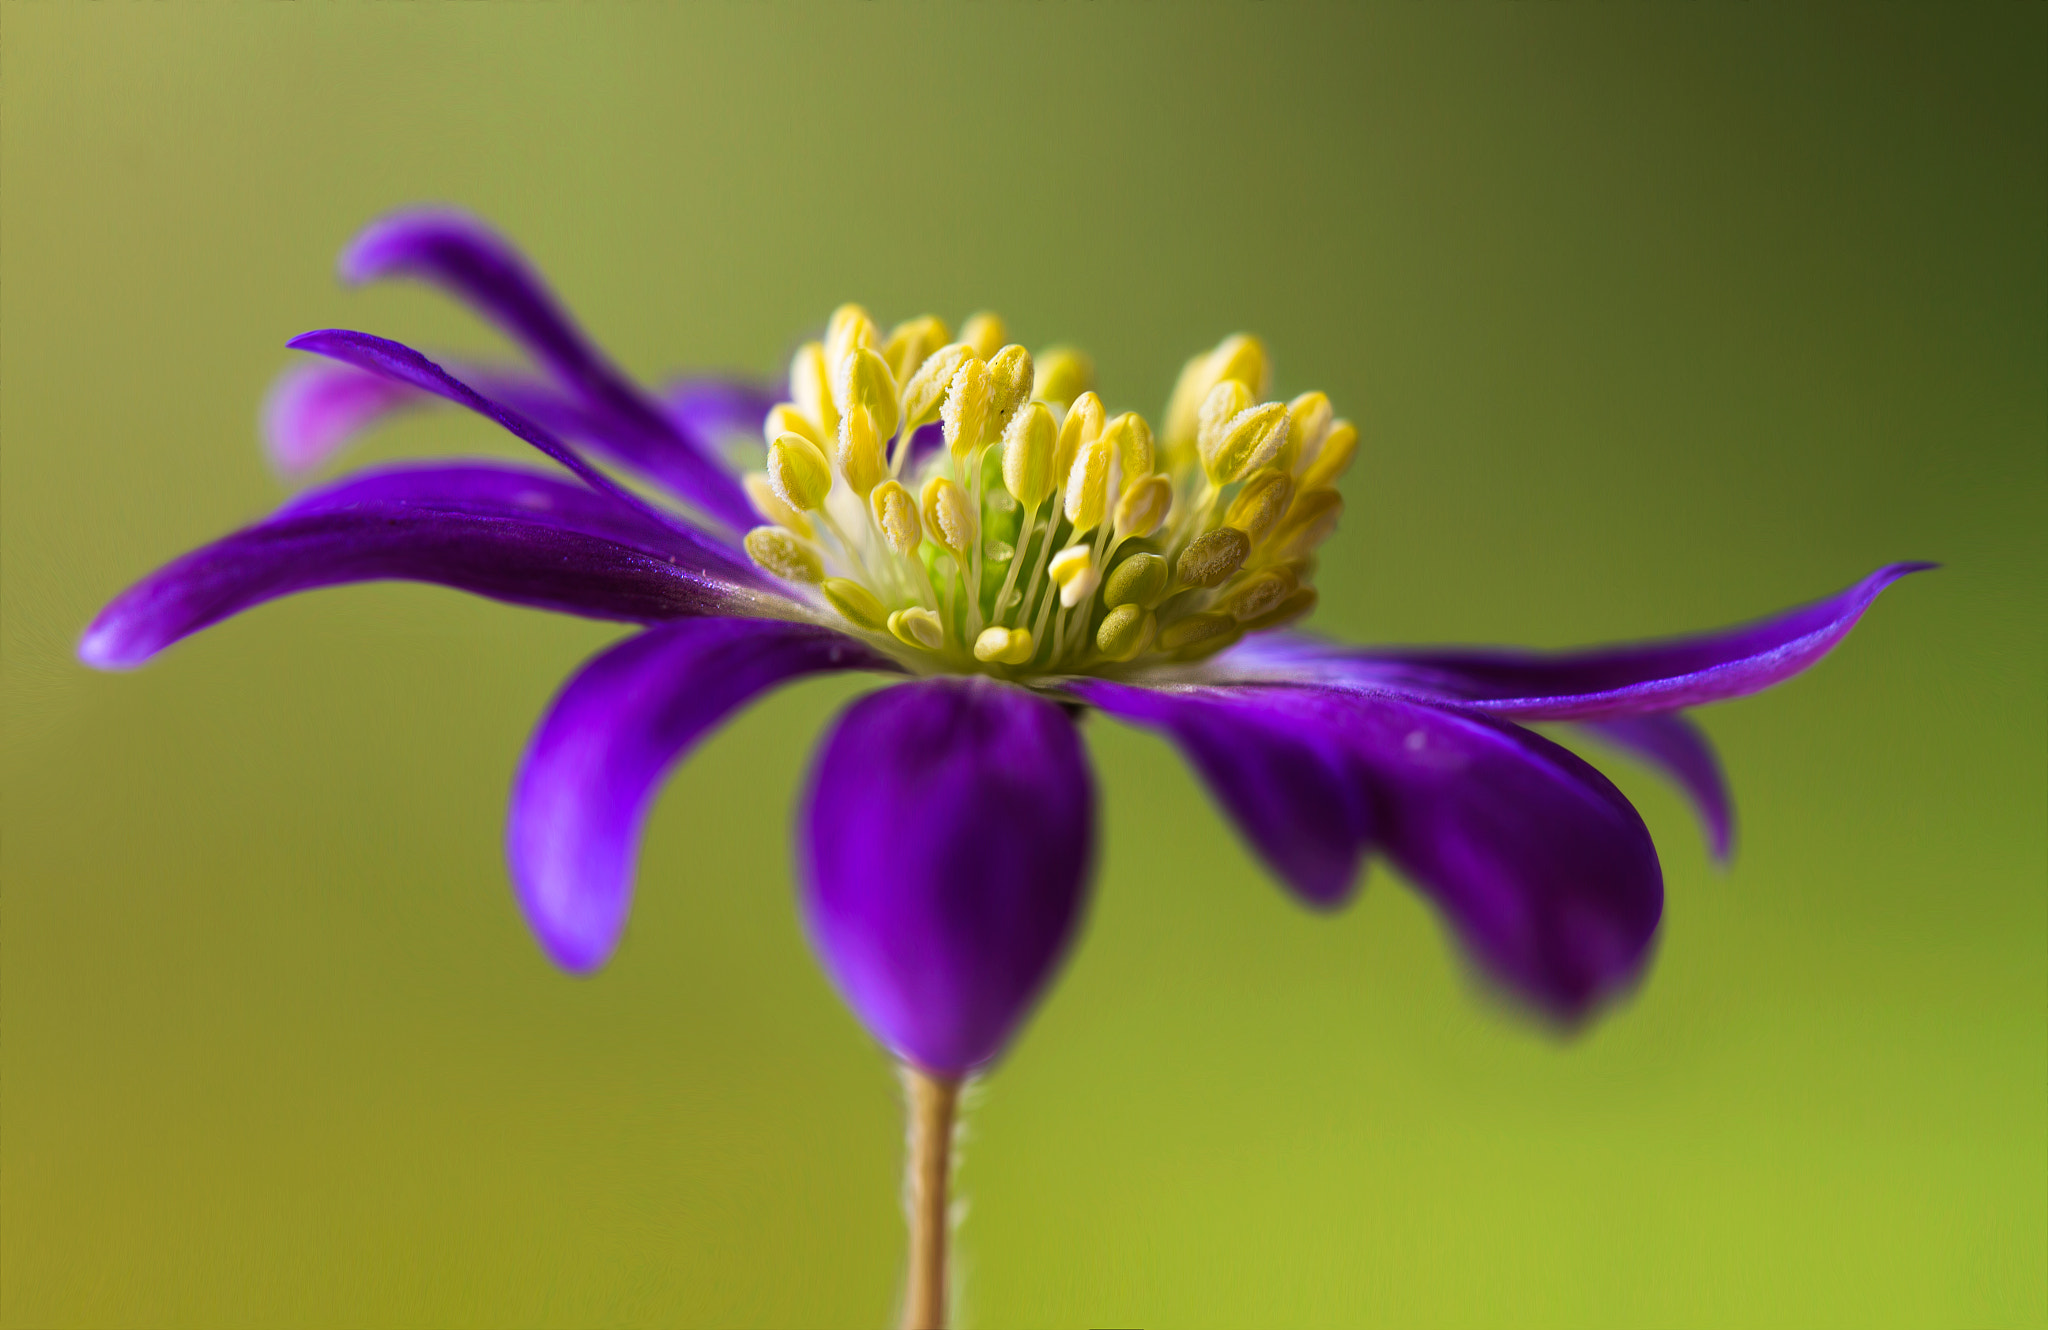 Photograph Anemone by Mandy Disher on 500px